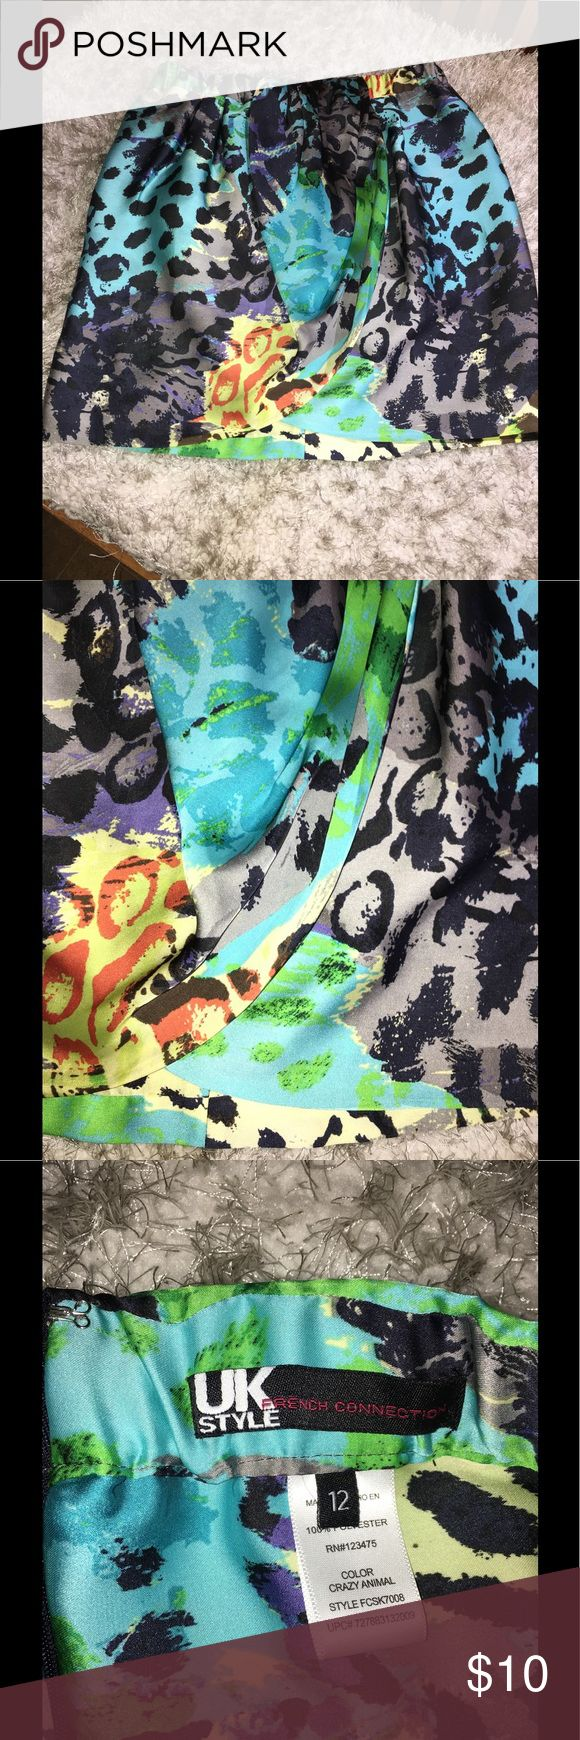 French Connection Satin Faux Wrap Skirt Size 12 Satin skirt by French Connection. Multi color print called crazy animal. Front has a wrap inspired style.  Size 12. Skirt is 18.5 inches long.   Great condition. Important:   All items are freshly laundered as applicable prior to shipping (new items and shoes excluded).  Not all my items are from pet/smoke free homes.  Price is reduced to reflect this!   Thank you for looking! French Connection Skirts Mini